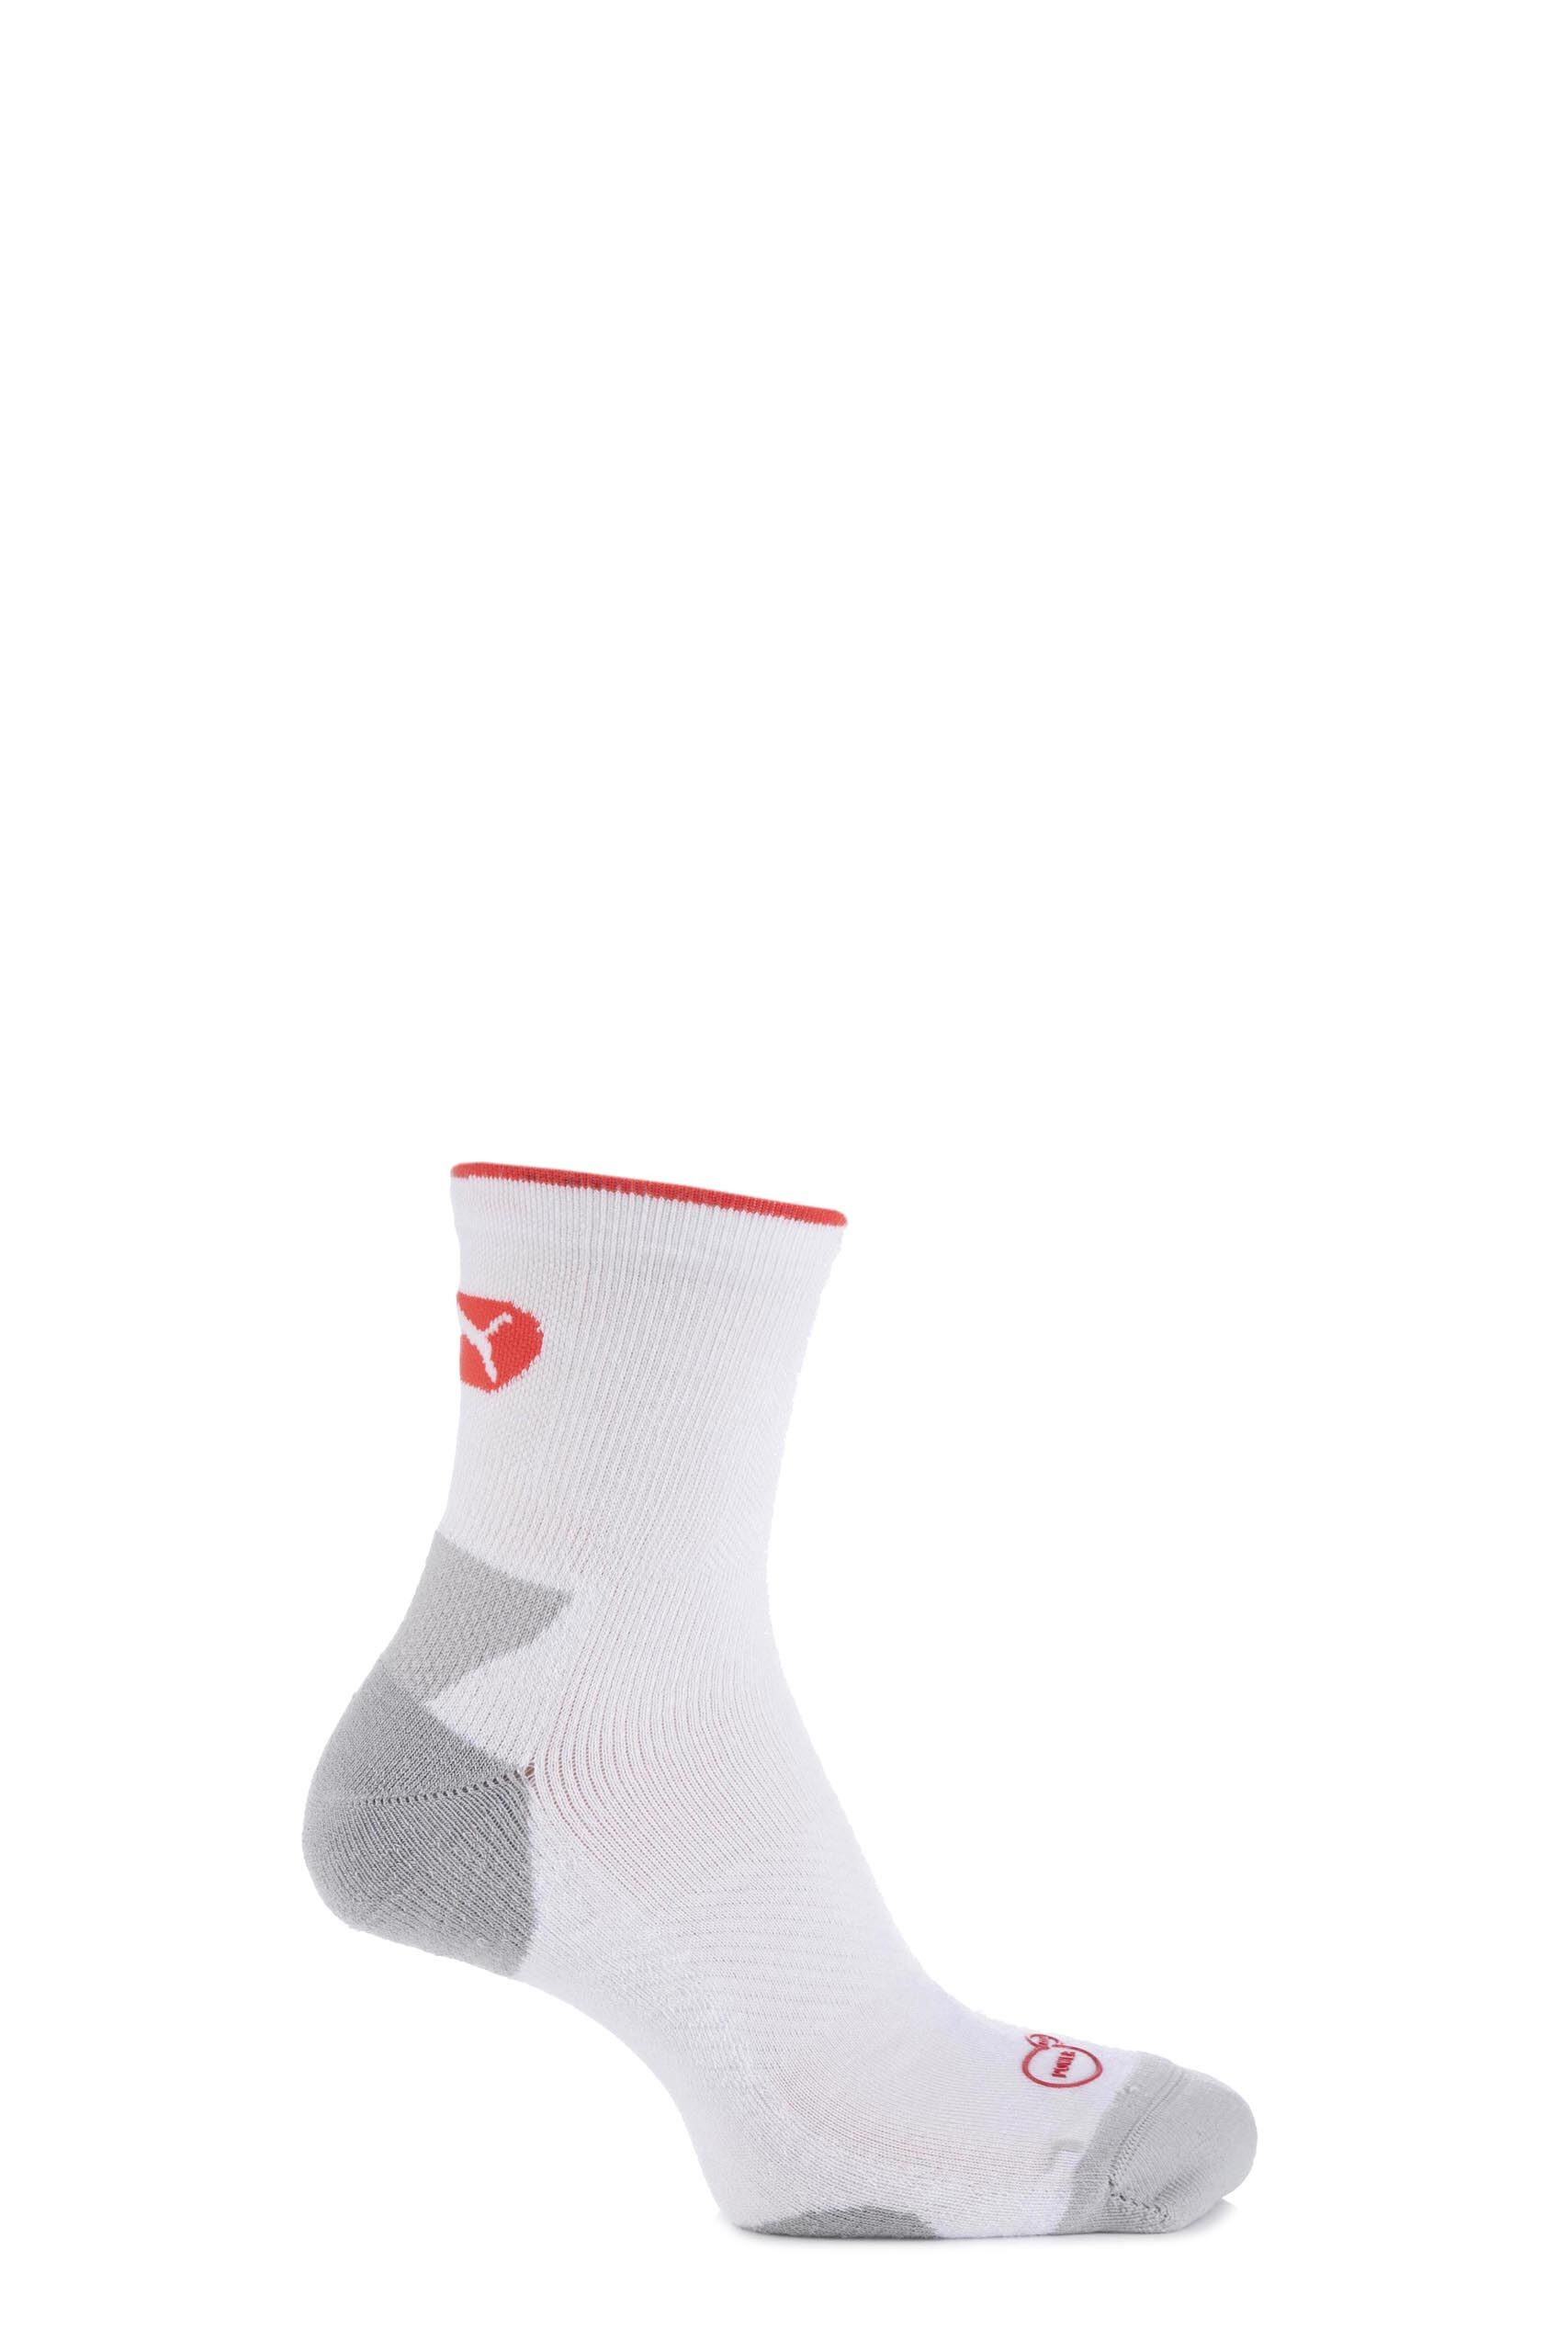 Image of 1 Pair White PowerCELL Performance and Mid-Weight Crew Training Socks Unisex 6-8 Unisex - Puma